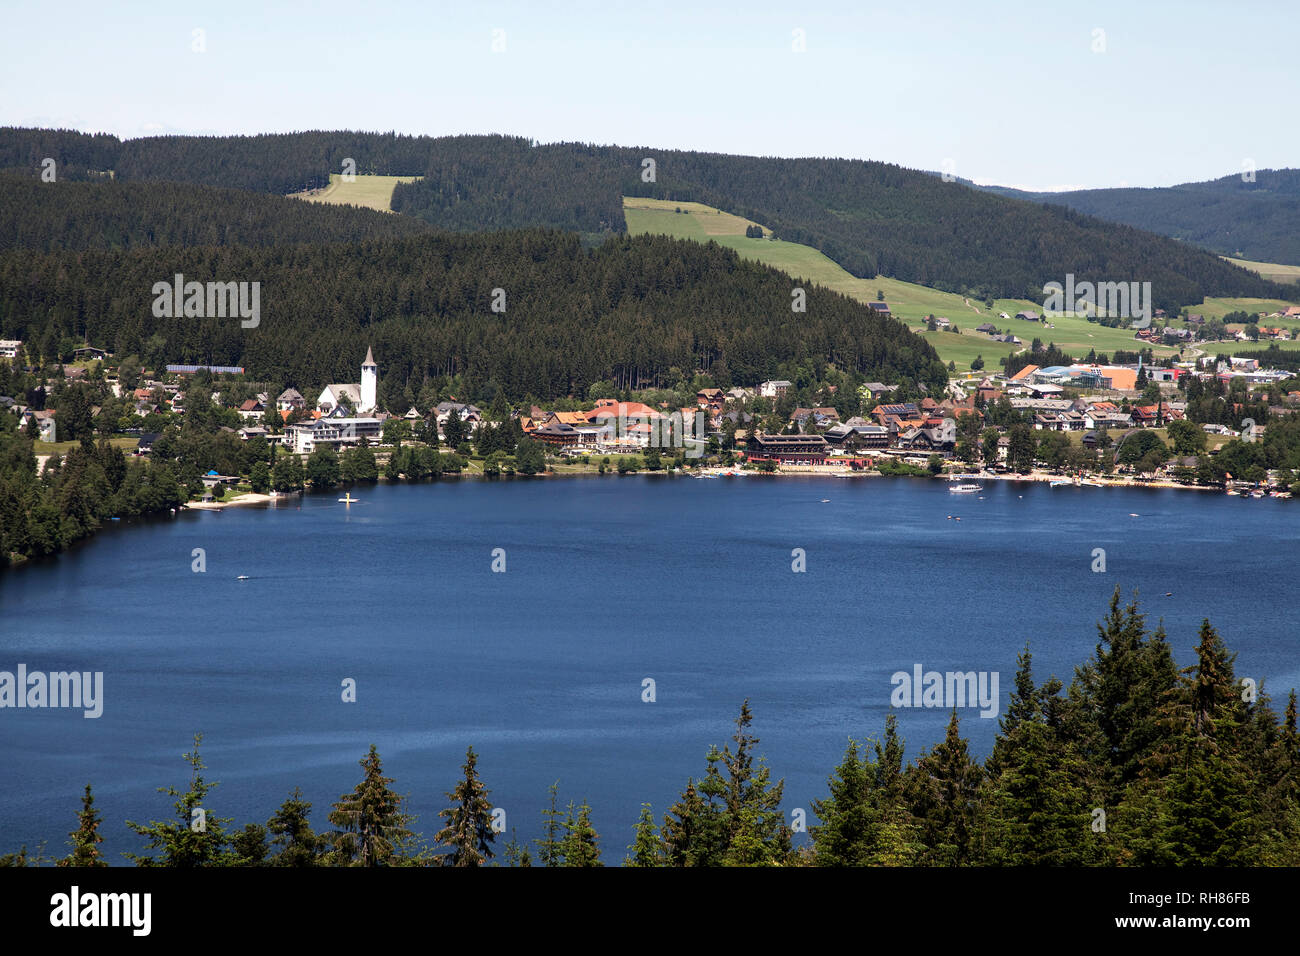 Titisee At Lake Titisee Titisee Neustadt Black Forest Germany Stock Photo Alamy